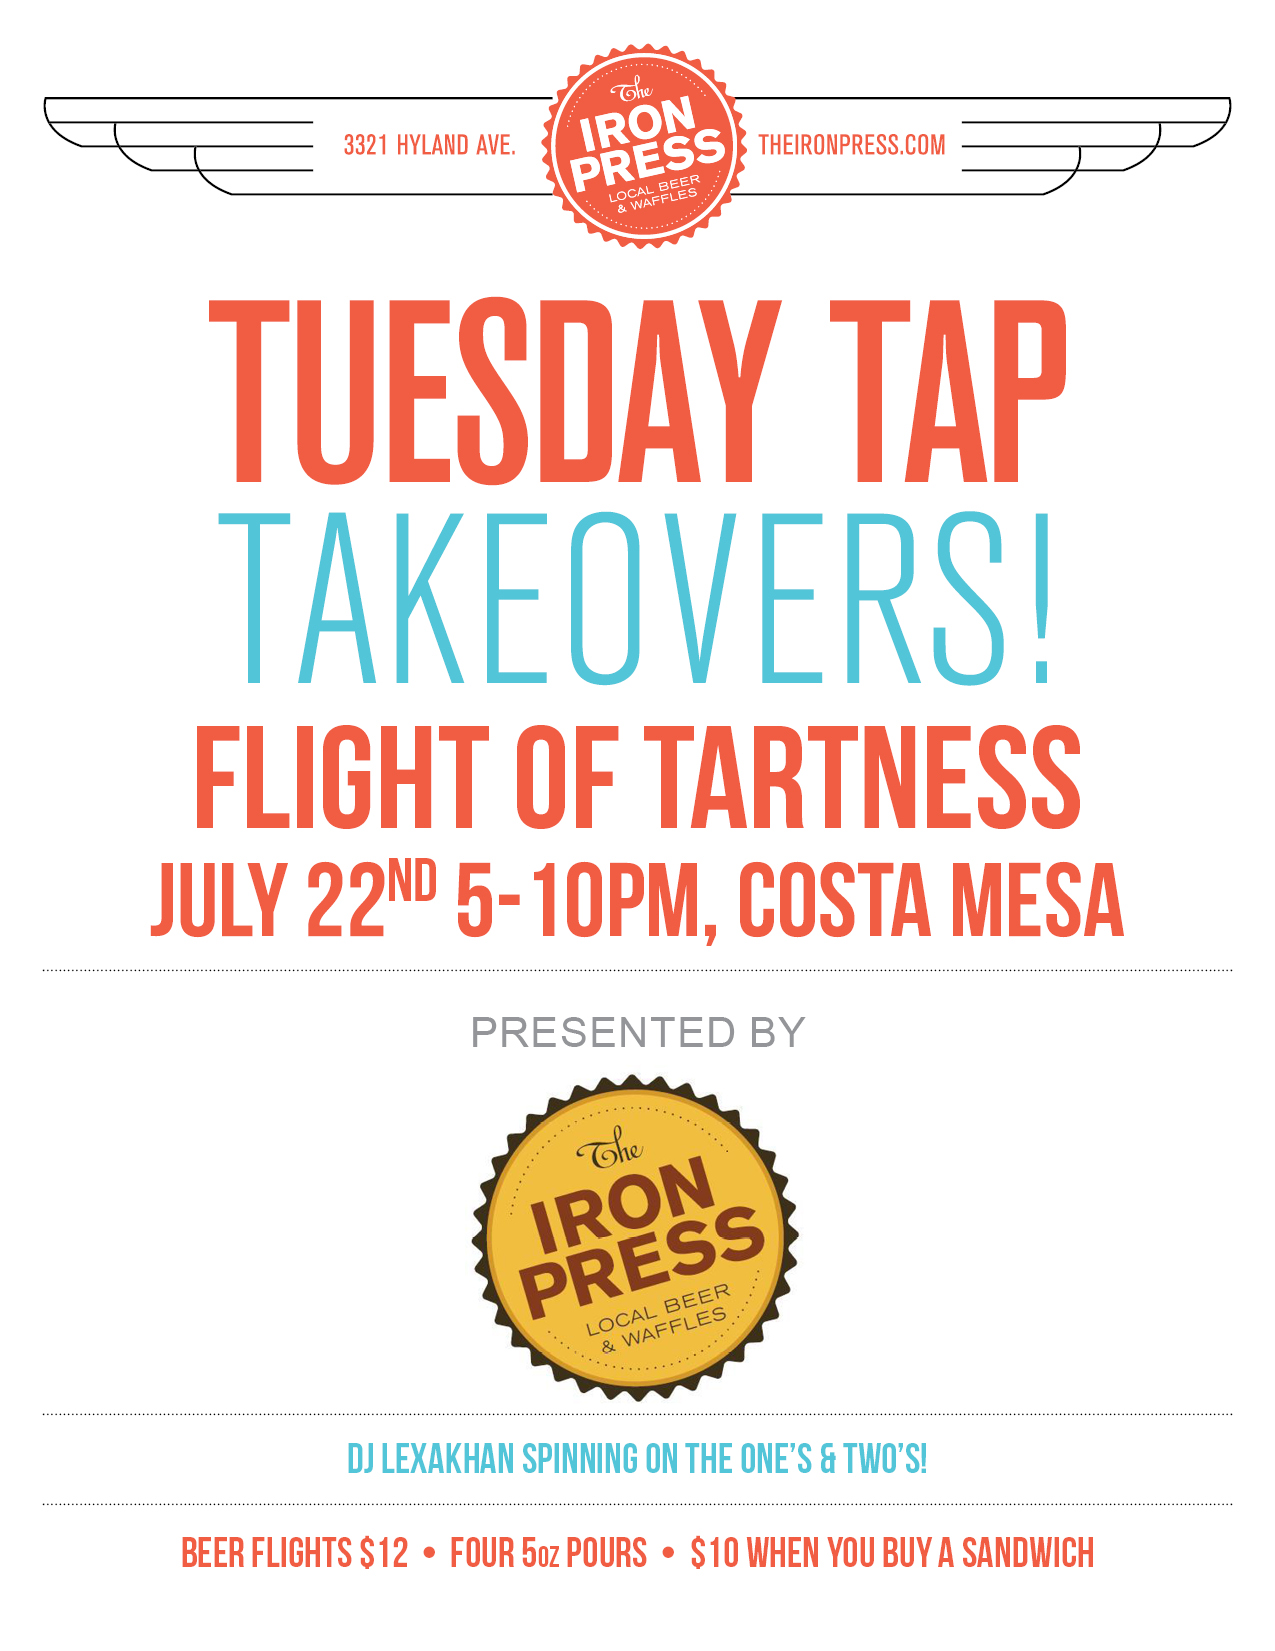 Flight of Tartness